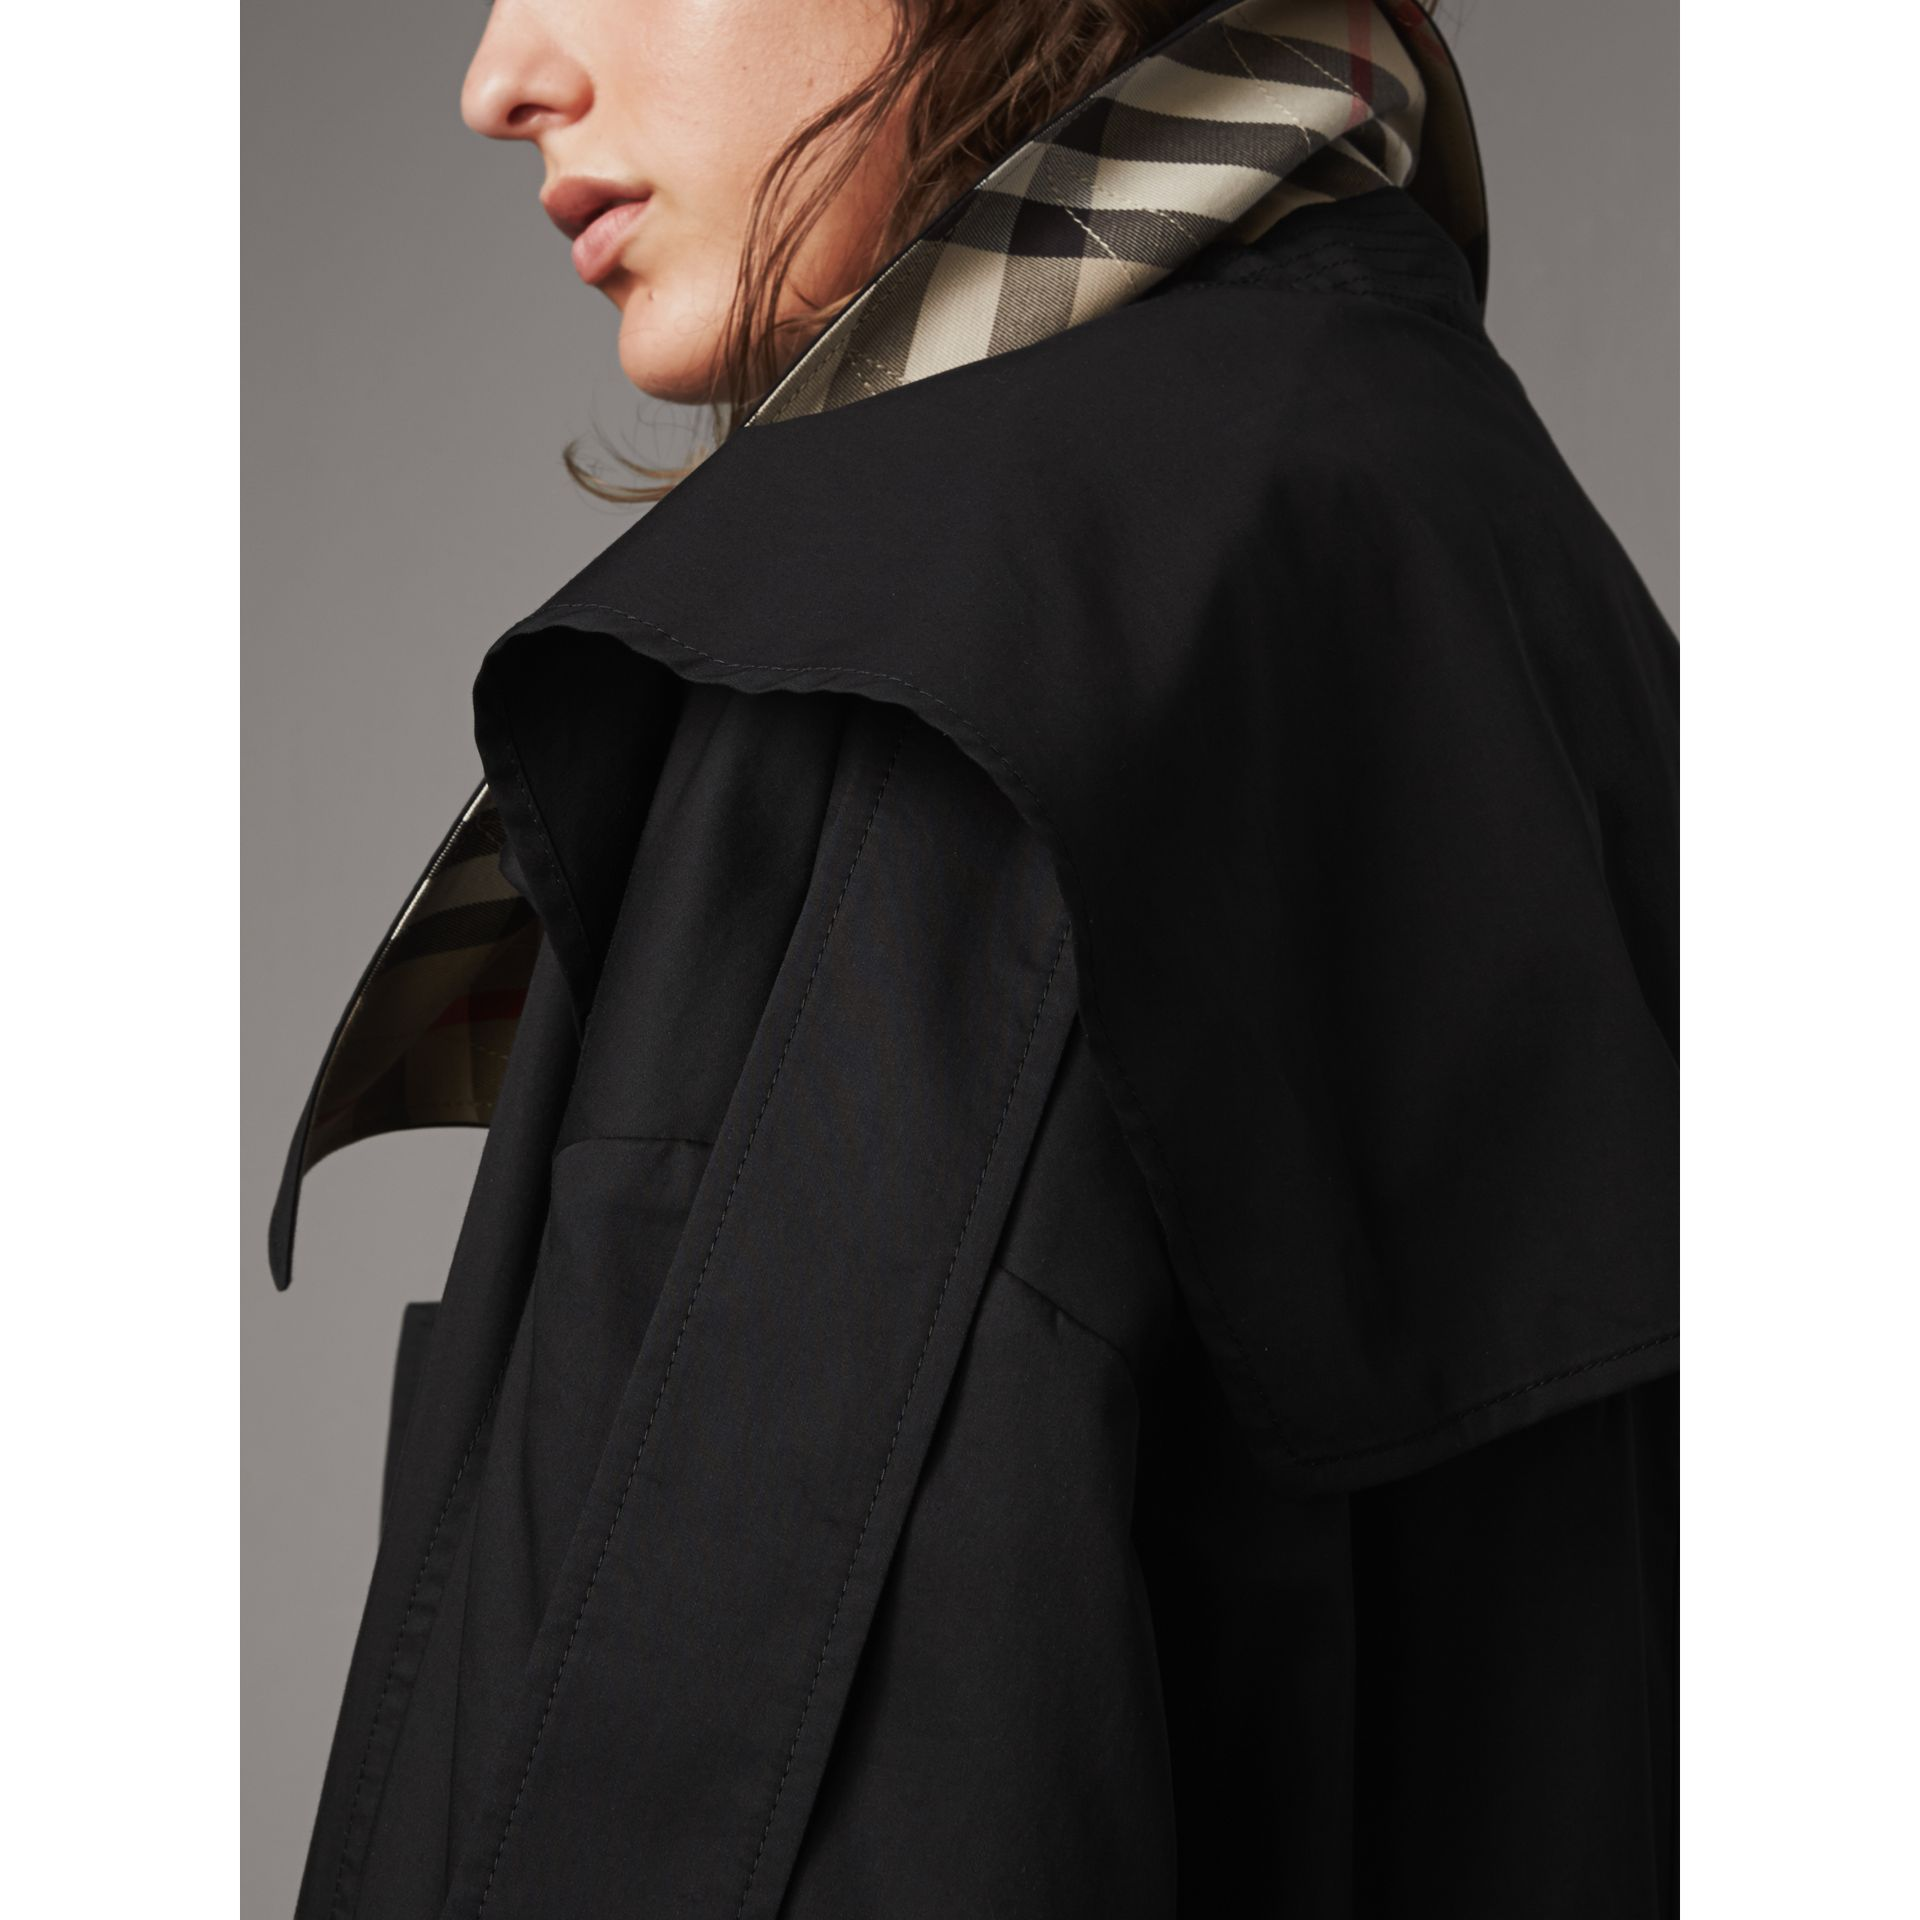 Cotton Asymmetric Trench Coat in Black - Women | Burberry Canada - gallery image 5